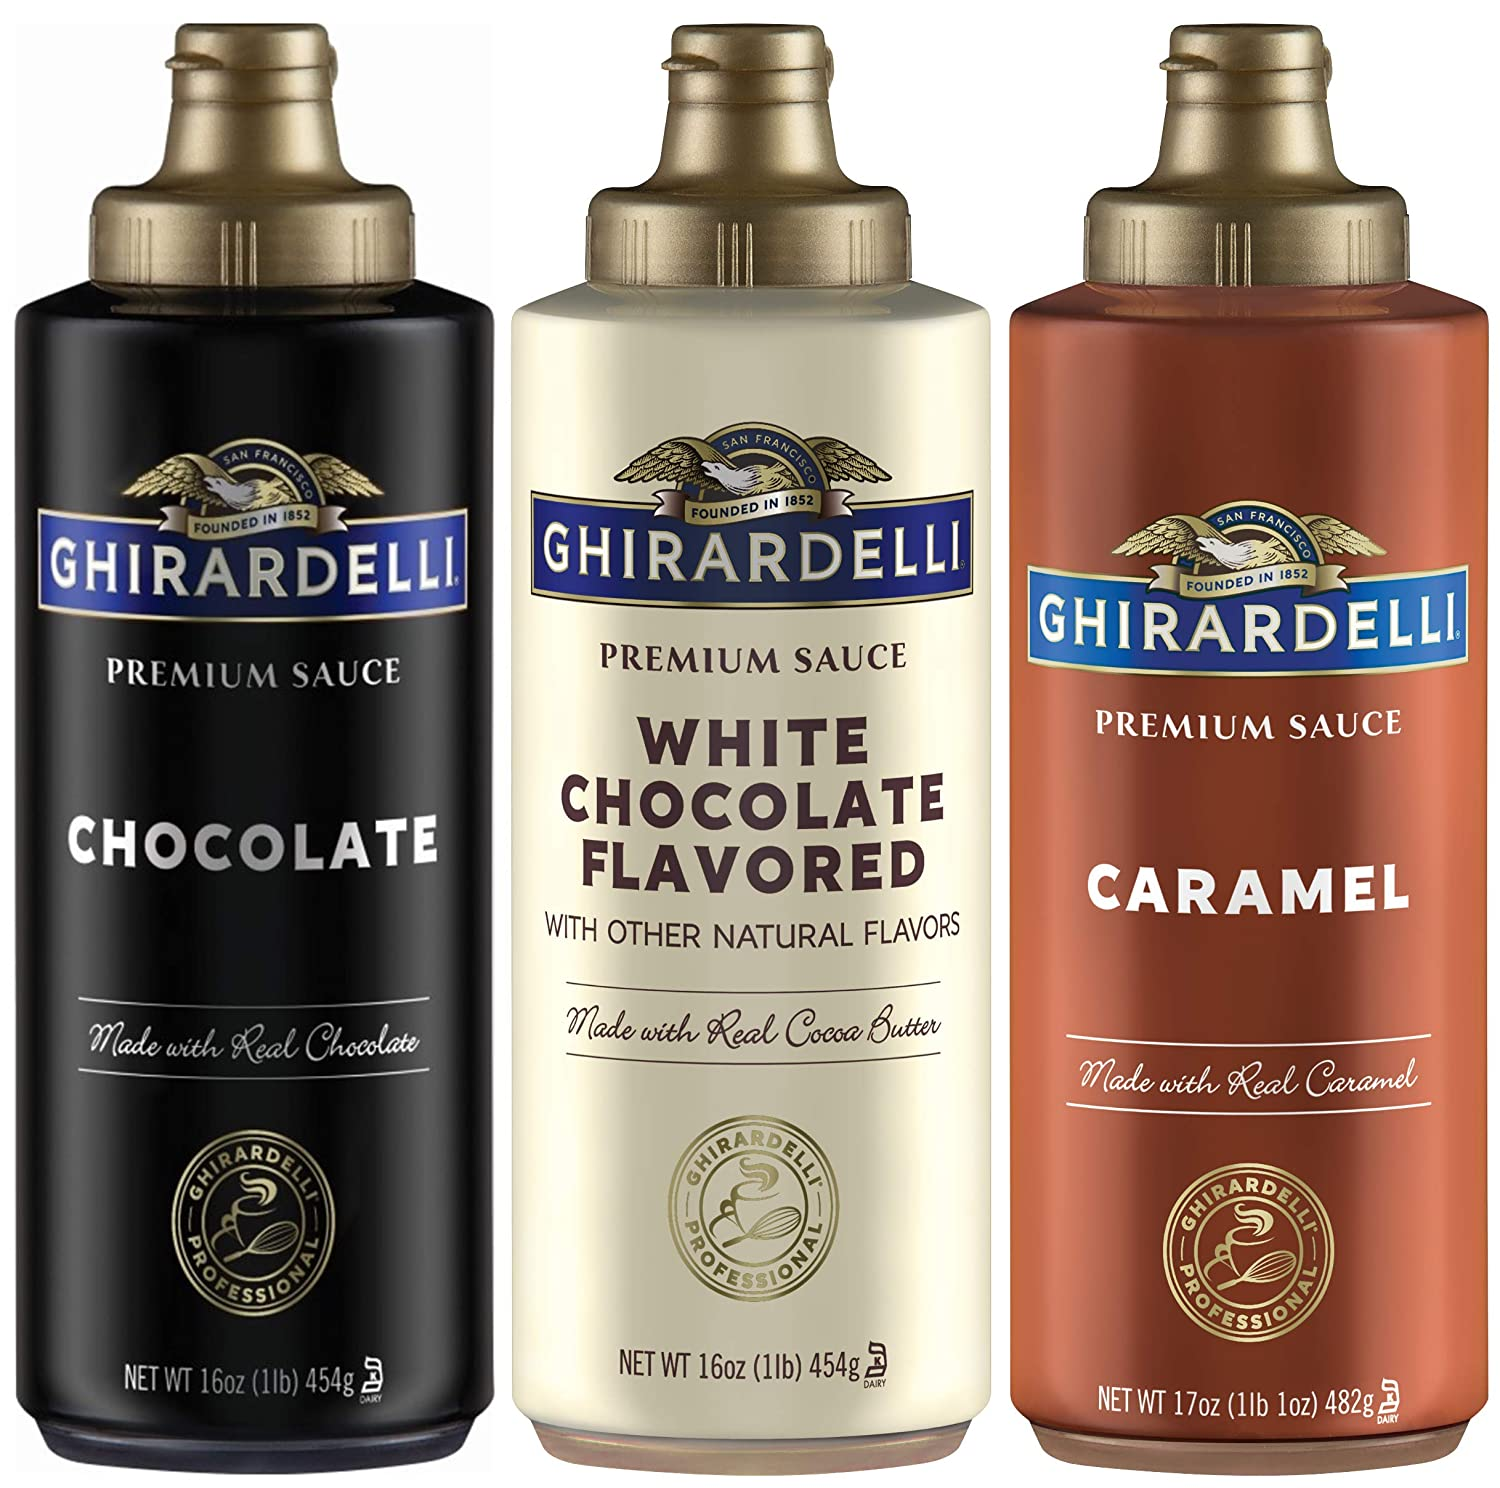 Ghirardelli Squeeze Bottles - Caramel, Chocolate & White Chocolate